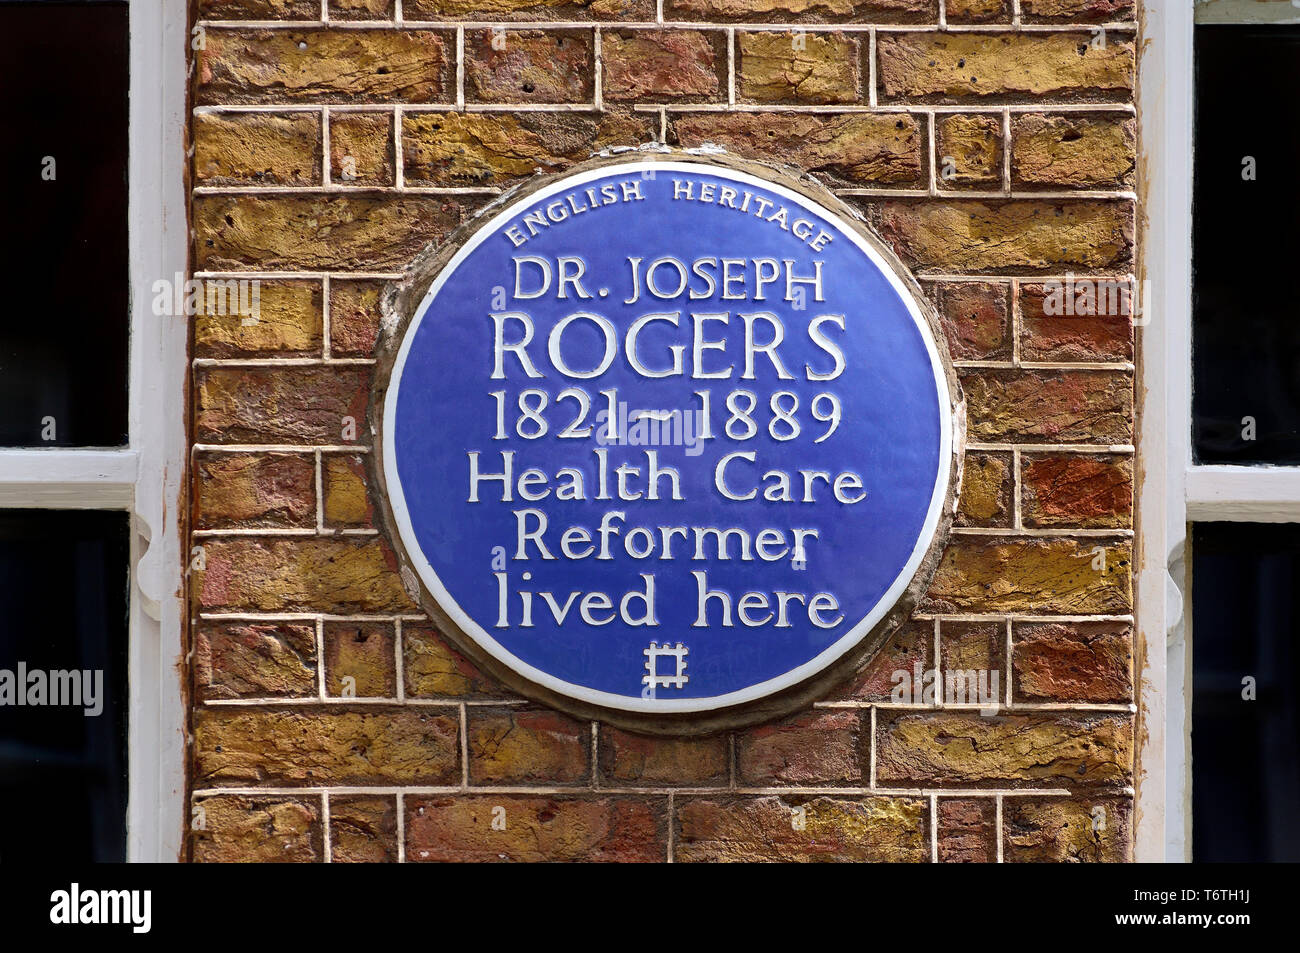 London, England, UK. Commemorative Blue Plaque: Dr Joseph Rogers (1821-1889) health care reformer lived here. 33 Dean Street, Westminster - Stock Image